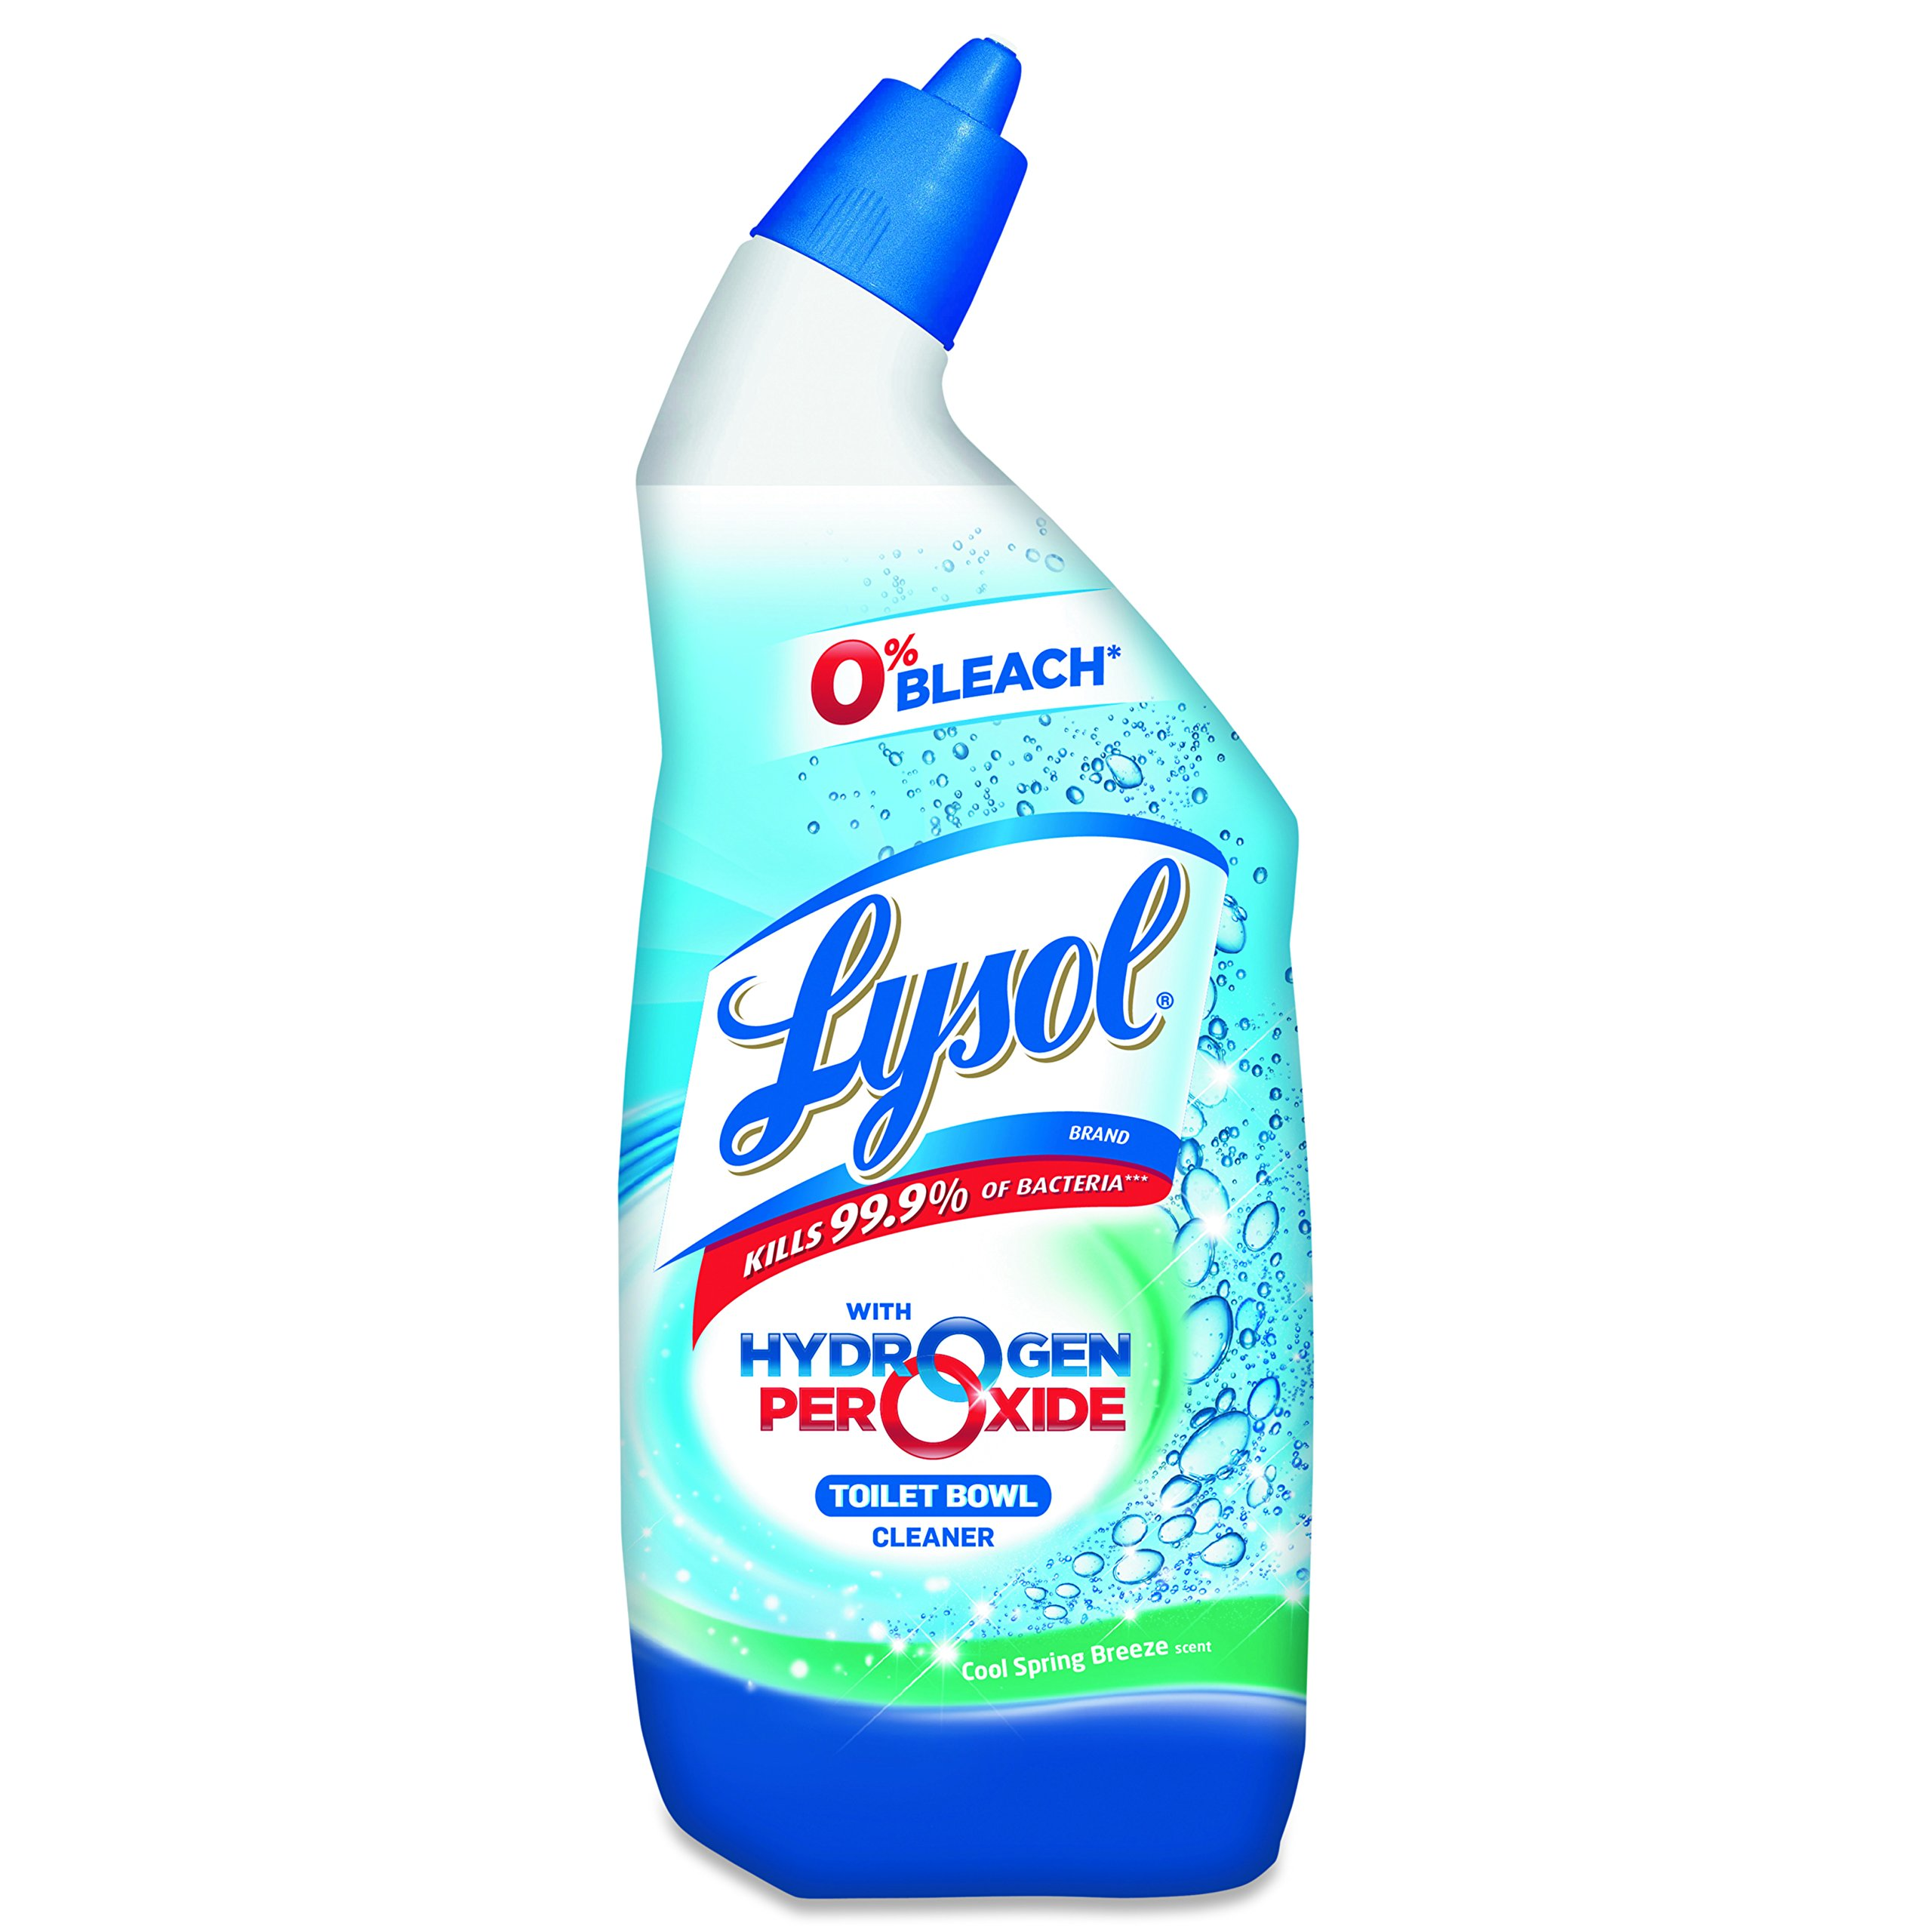 LYSOL Brand 85020CT Toilet Bowl Cleaner with Hydrogen Peroxide, 24oz Angle-Necked Bottle (Case of 12 Bottles) by Lysol